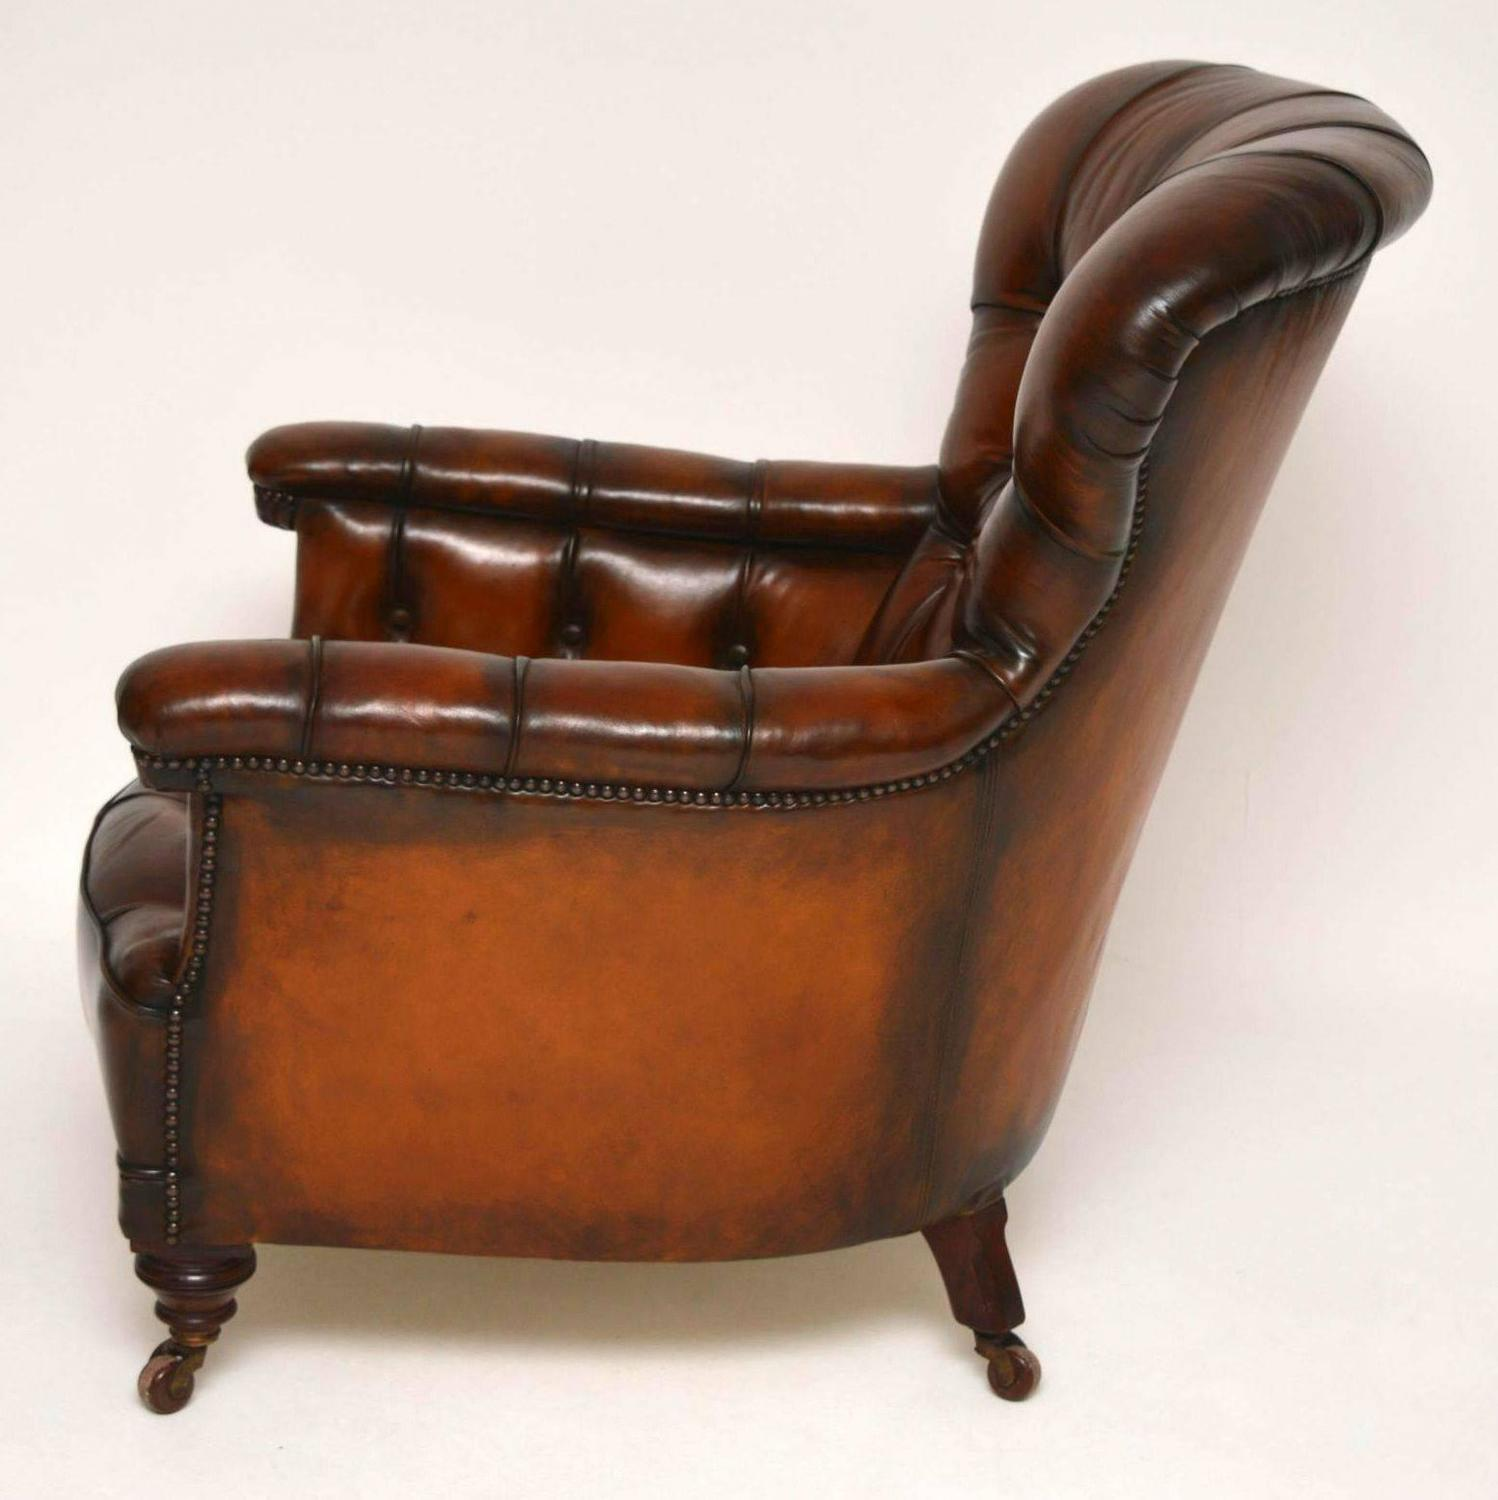 arm chairs for sale chair and half sleeper sofa stunning antique victorian leather armchair at